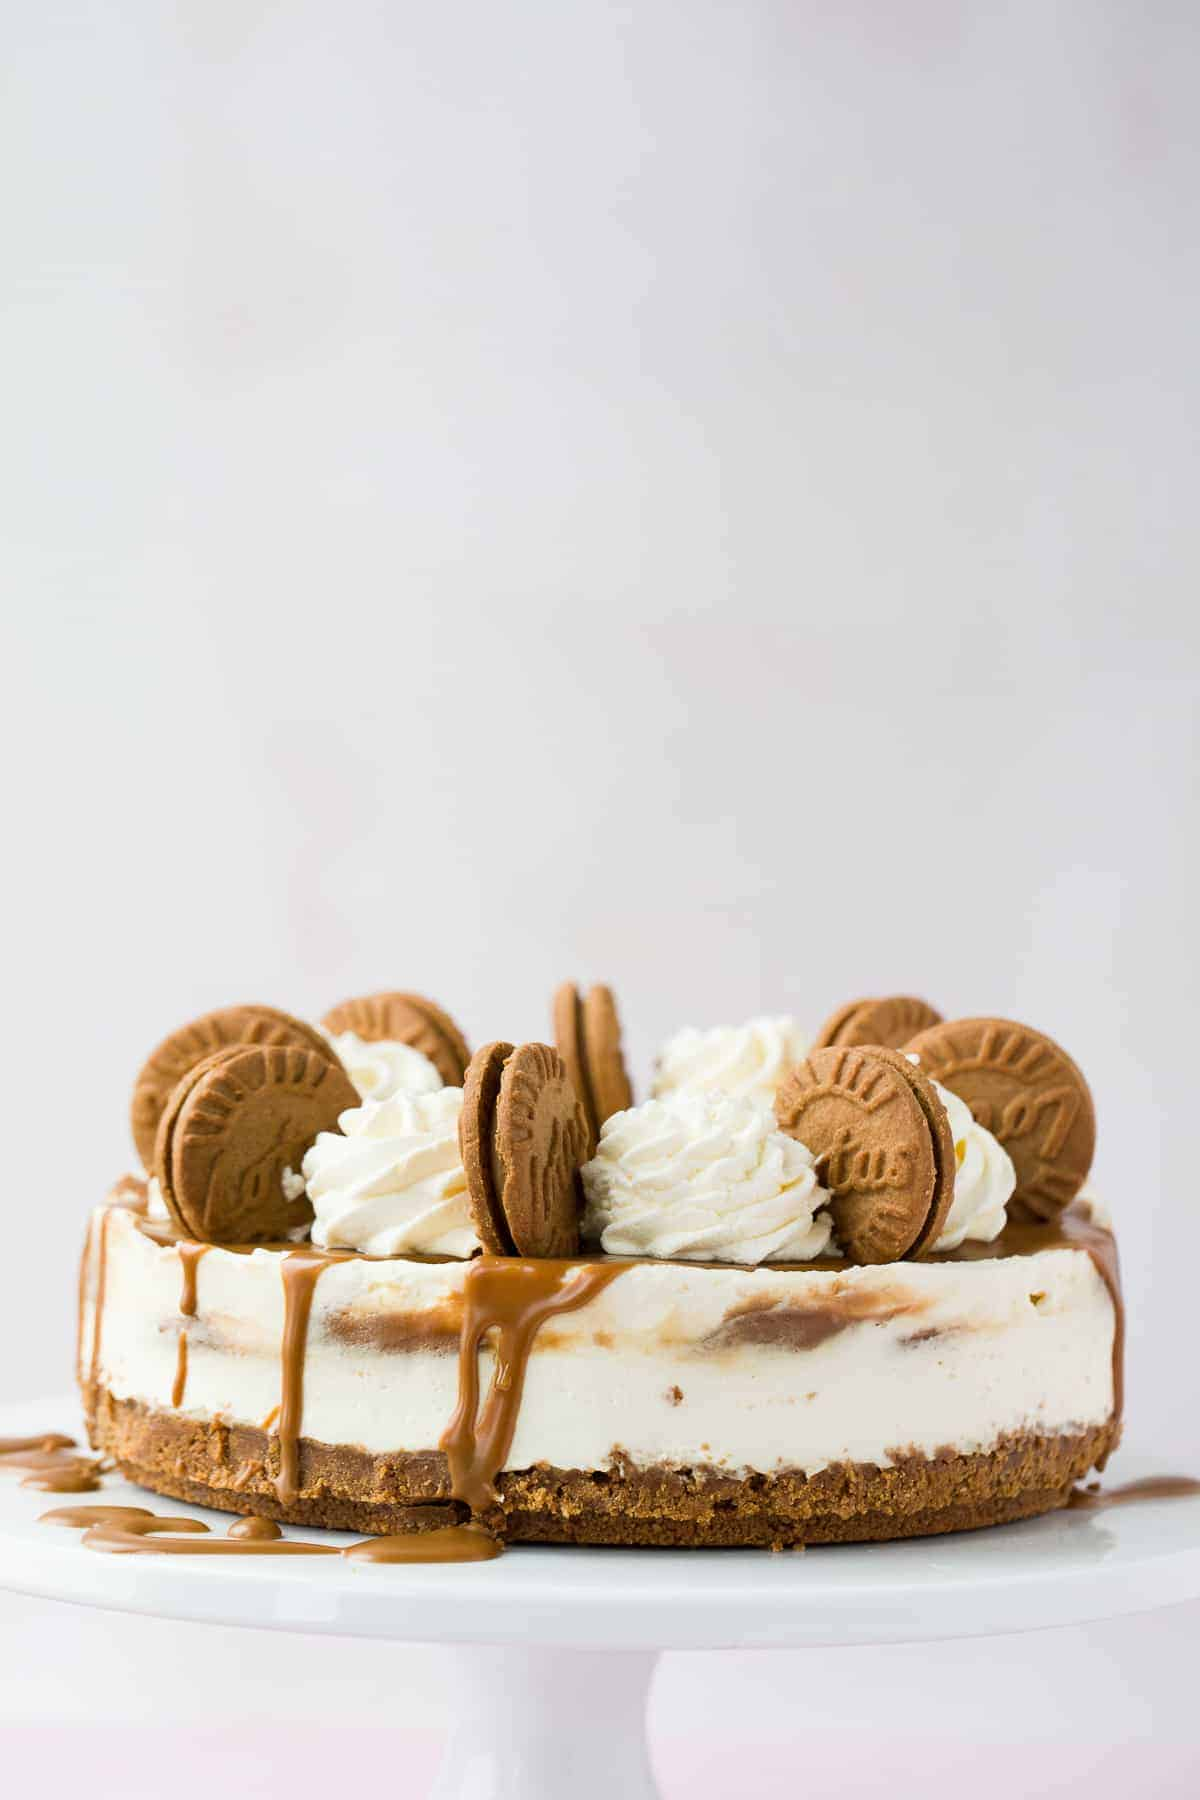 A biscoff flavoured cheesecake on a white cake stand.